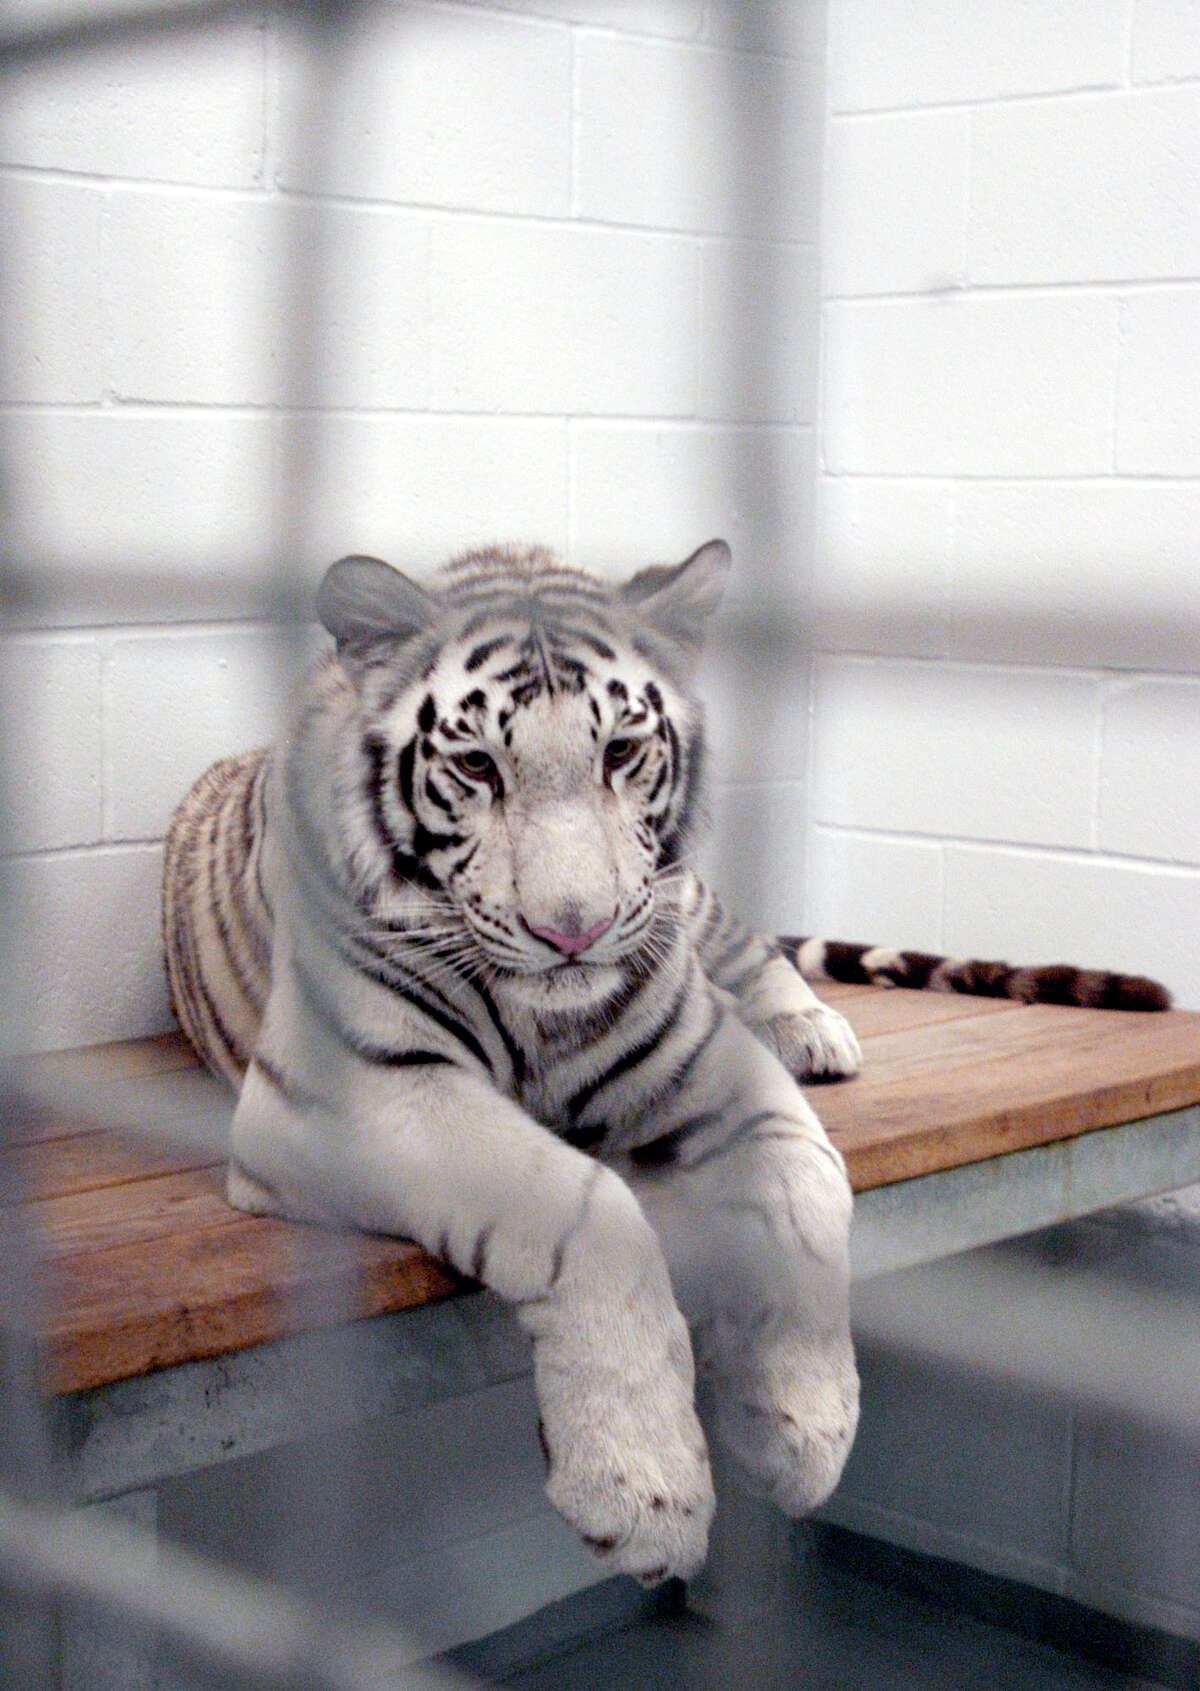 Marina, one of four rare white tigers at the Downtown Aquarium in Houston is shown in her cage.